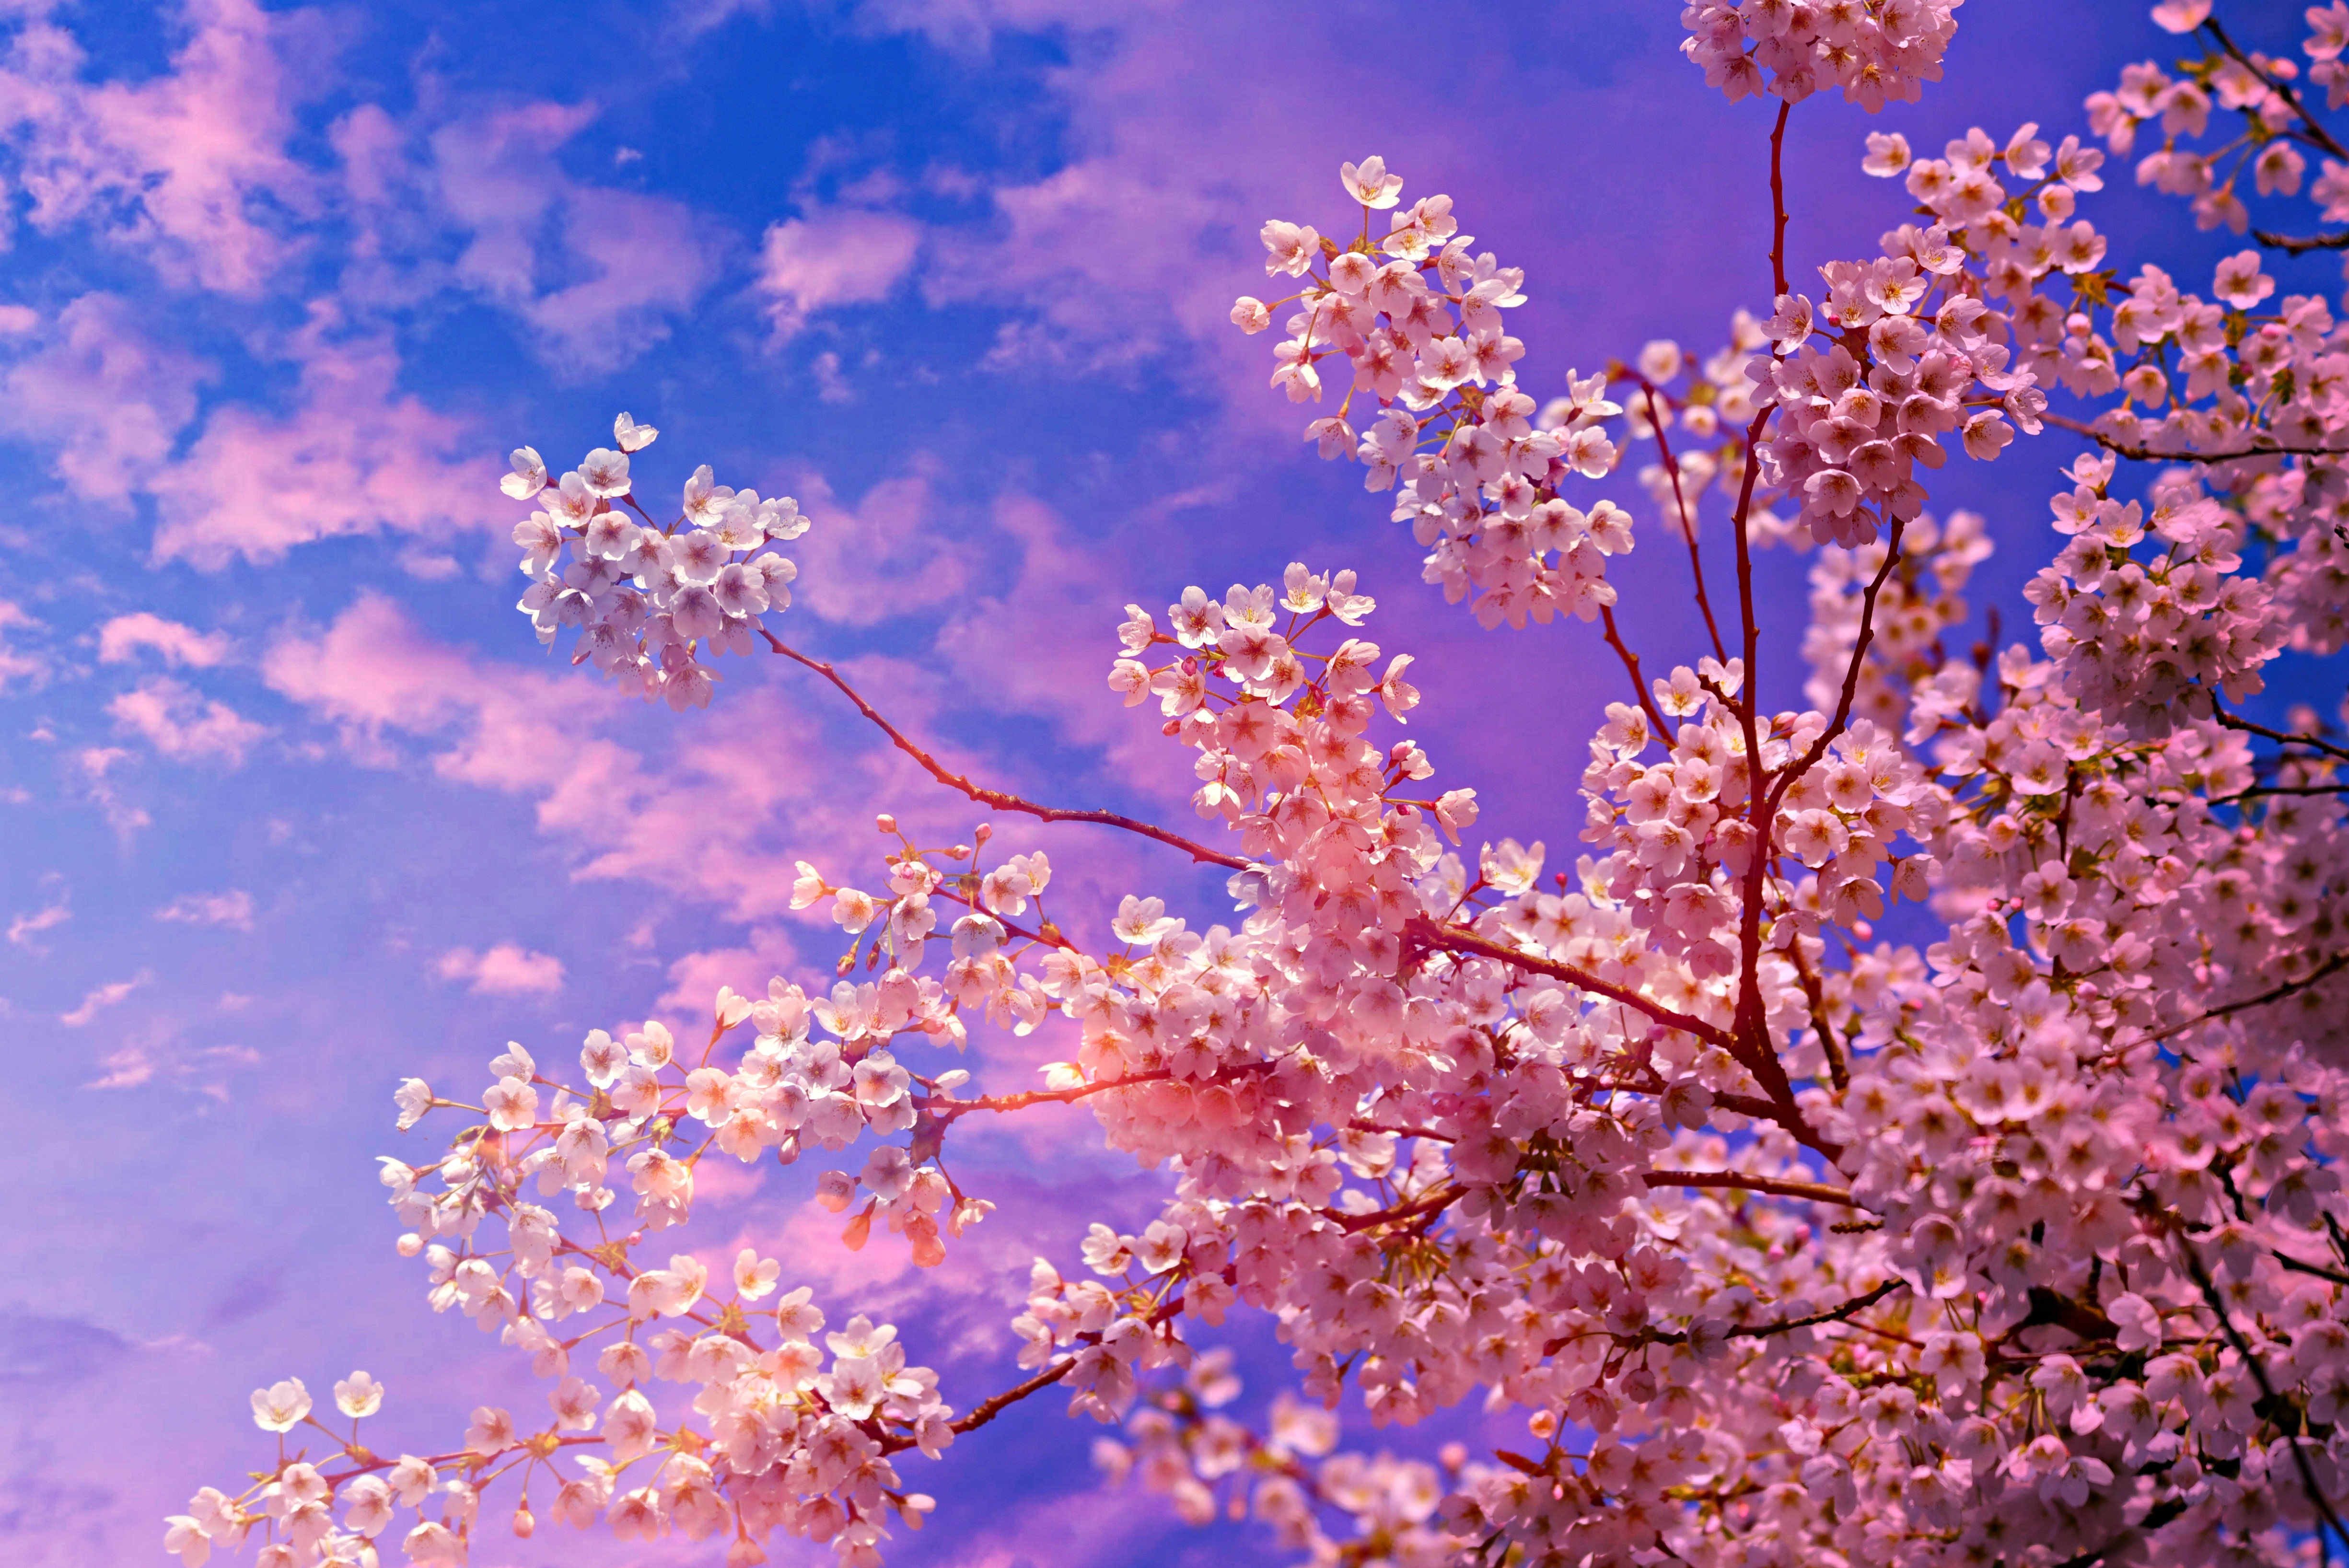 Cherry Blossom Tree 4k 5k Hd Nature 4k Wallpapers Images Backgrounds Photos And Pictures